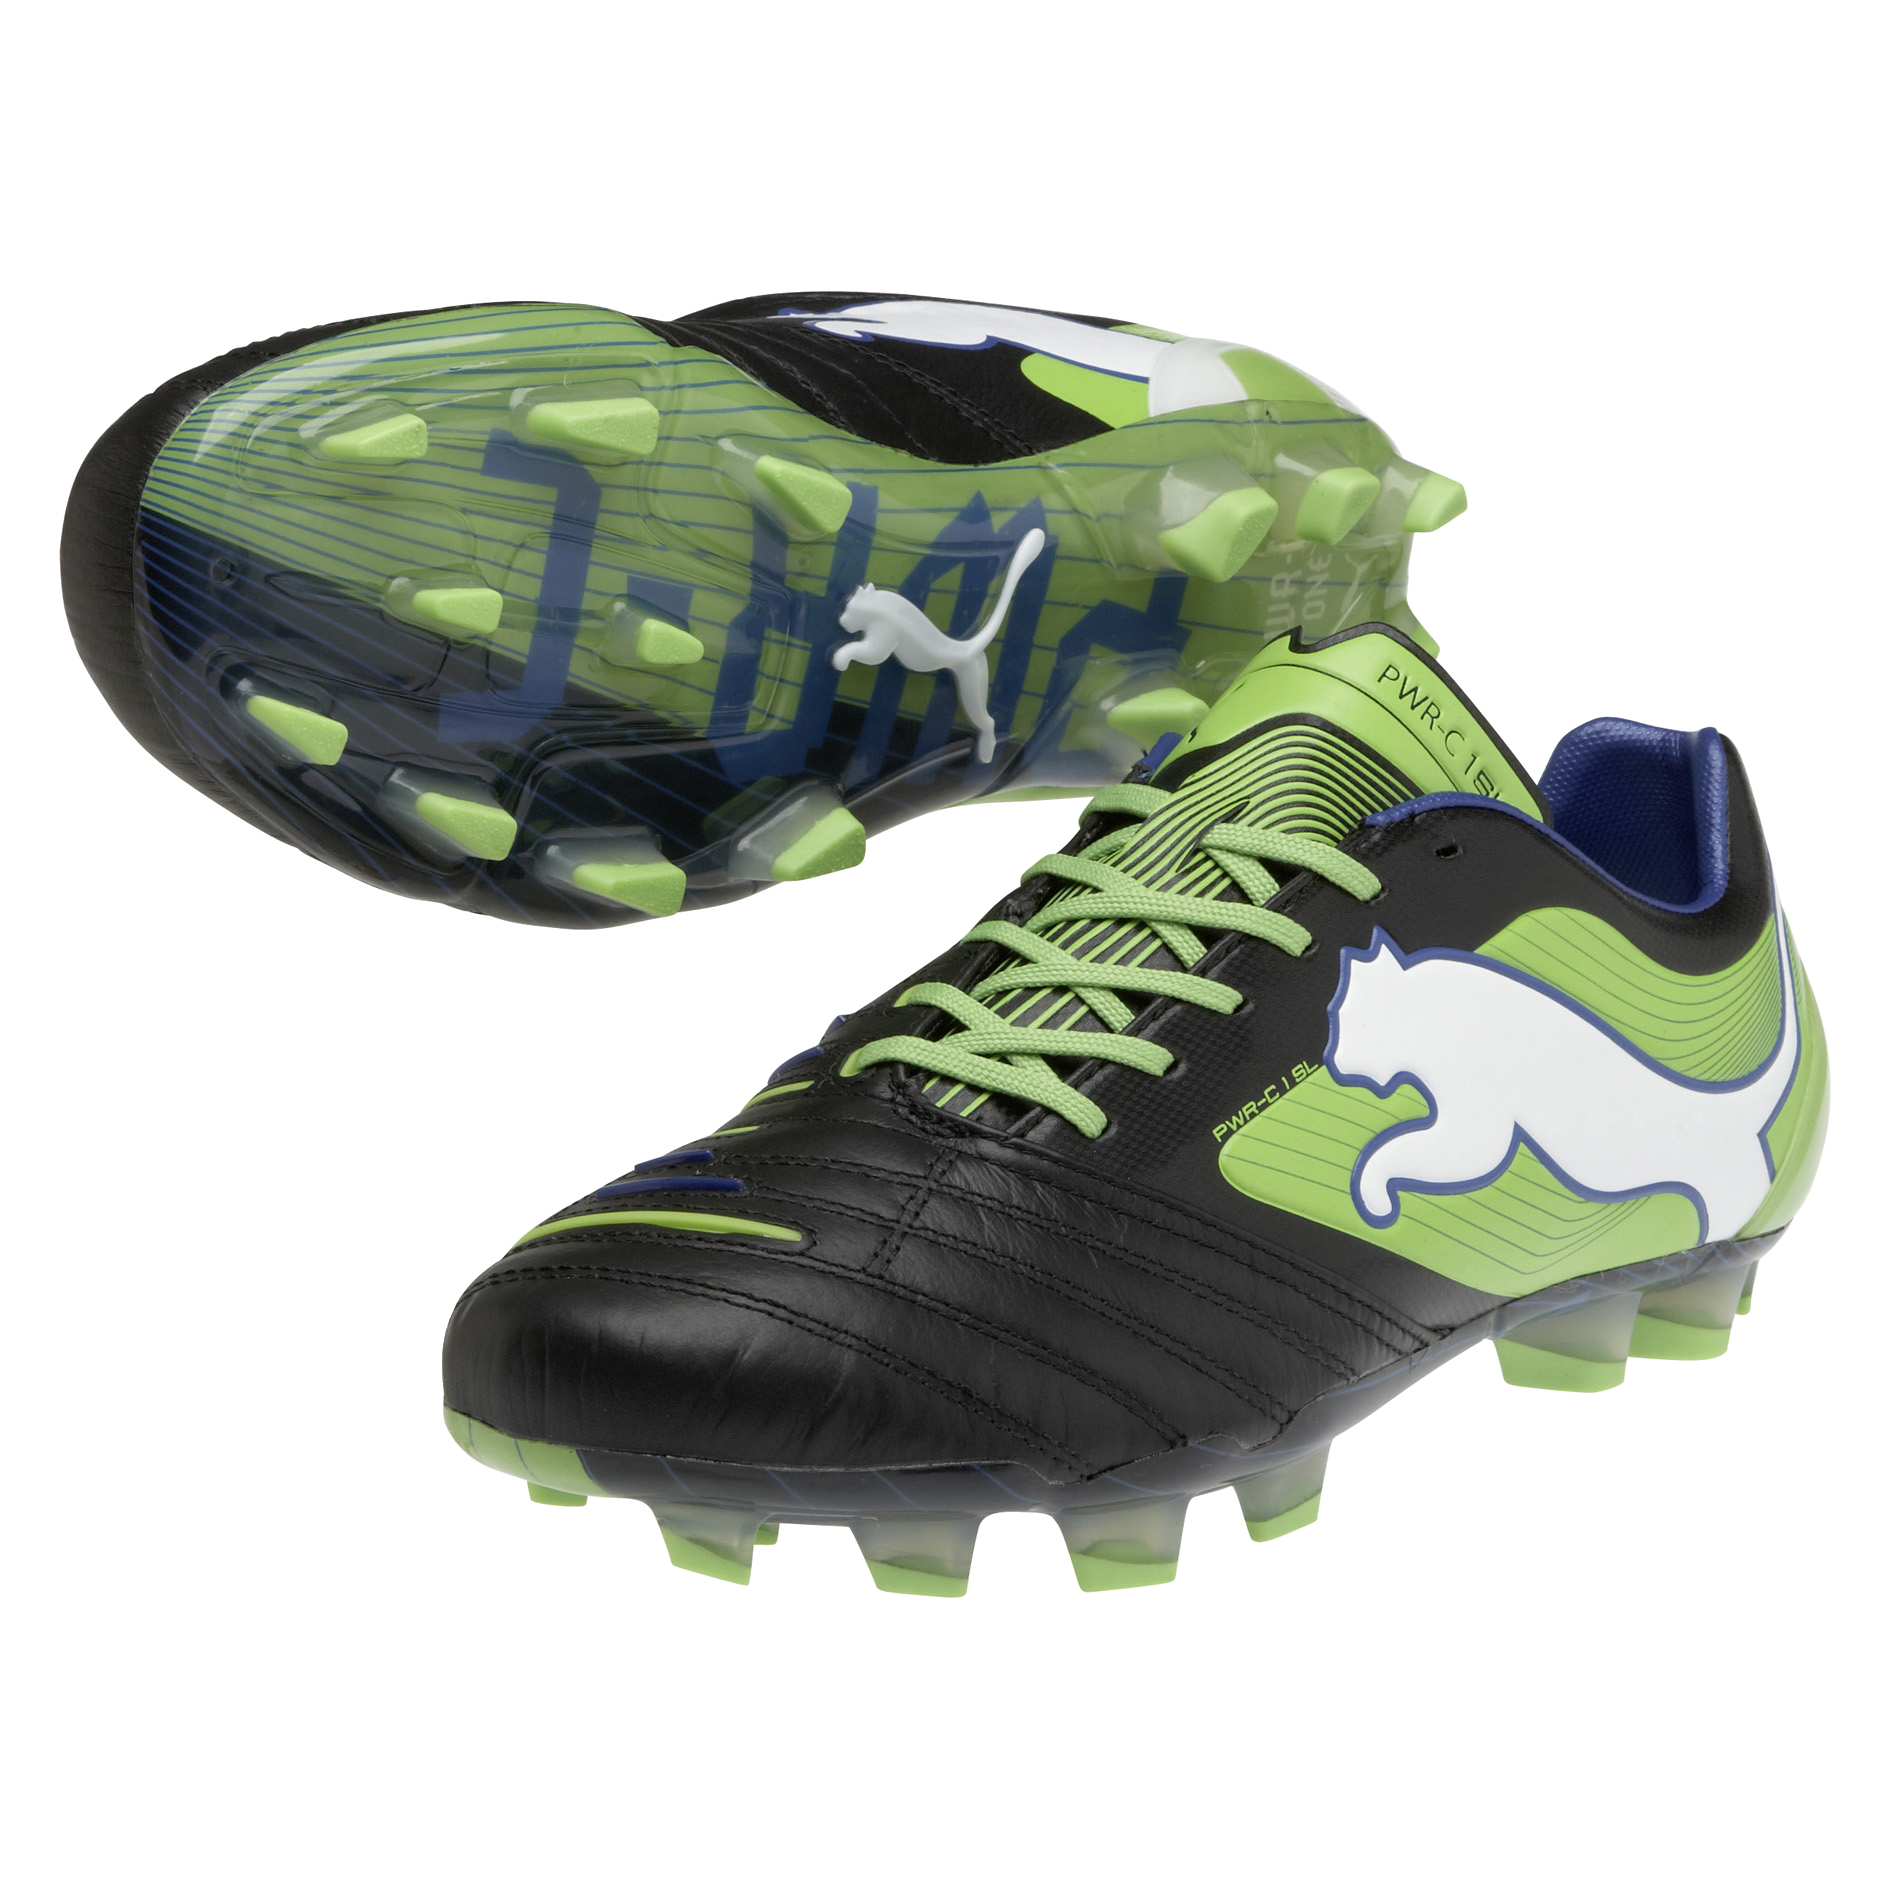 Puma PowerCat 1 SL Firm Ground